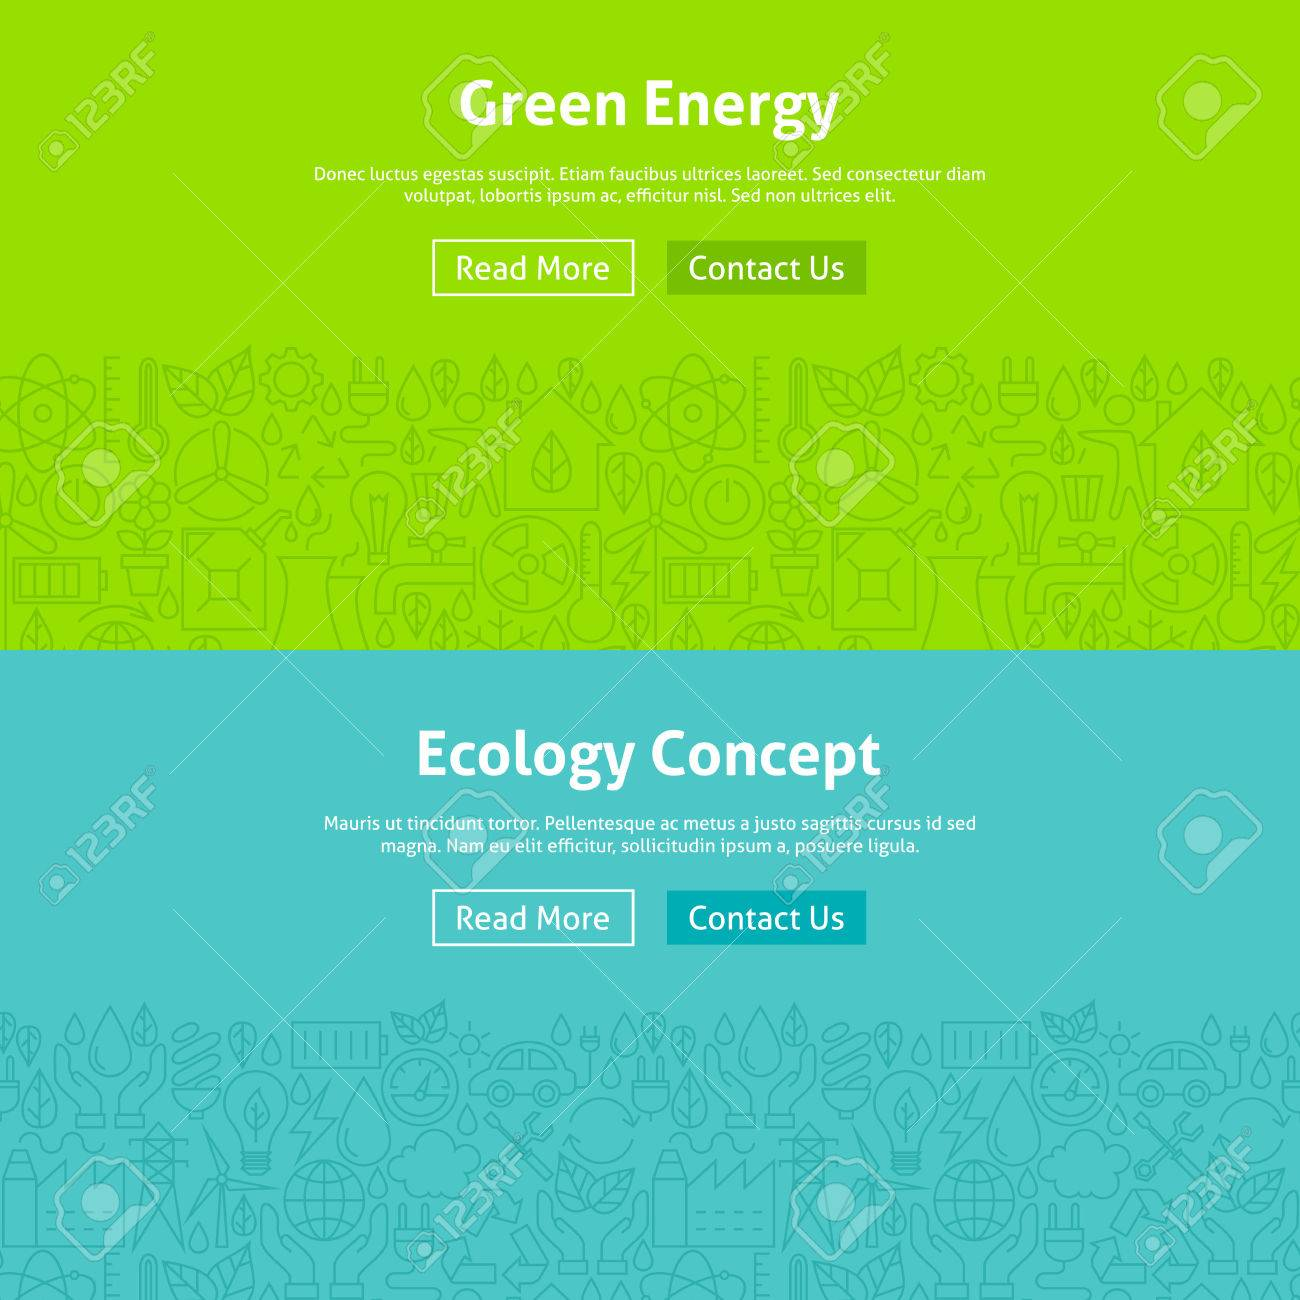 Ecology Green Energy Line Art Web Banners Set. Illustration for Website banner and landing page. Eco Power and Environment Modern Design. - 53438391